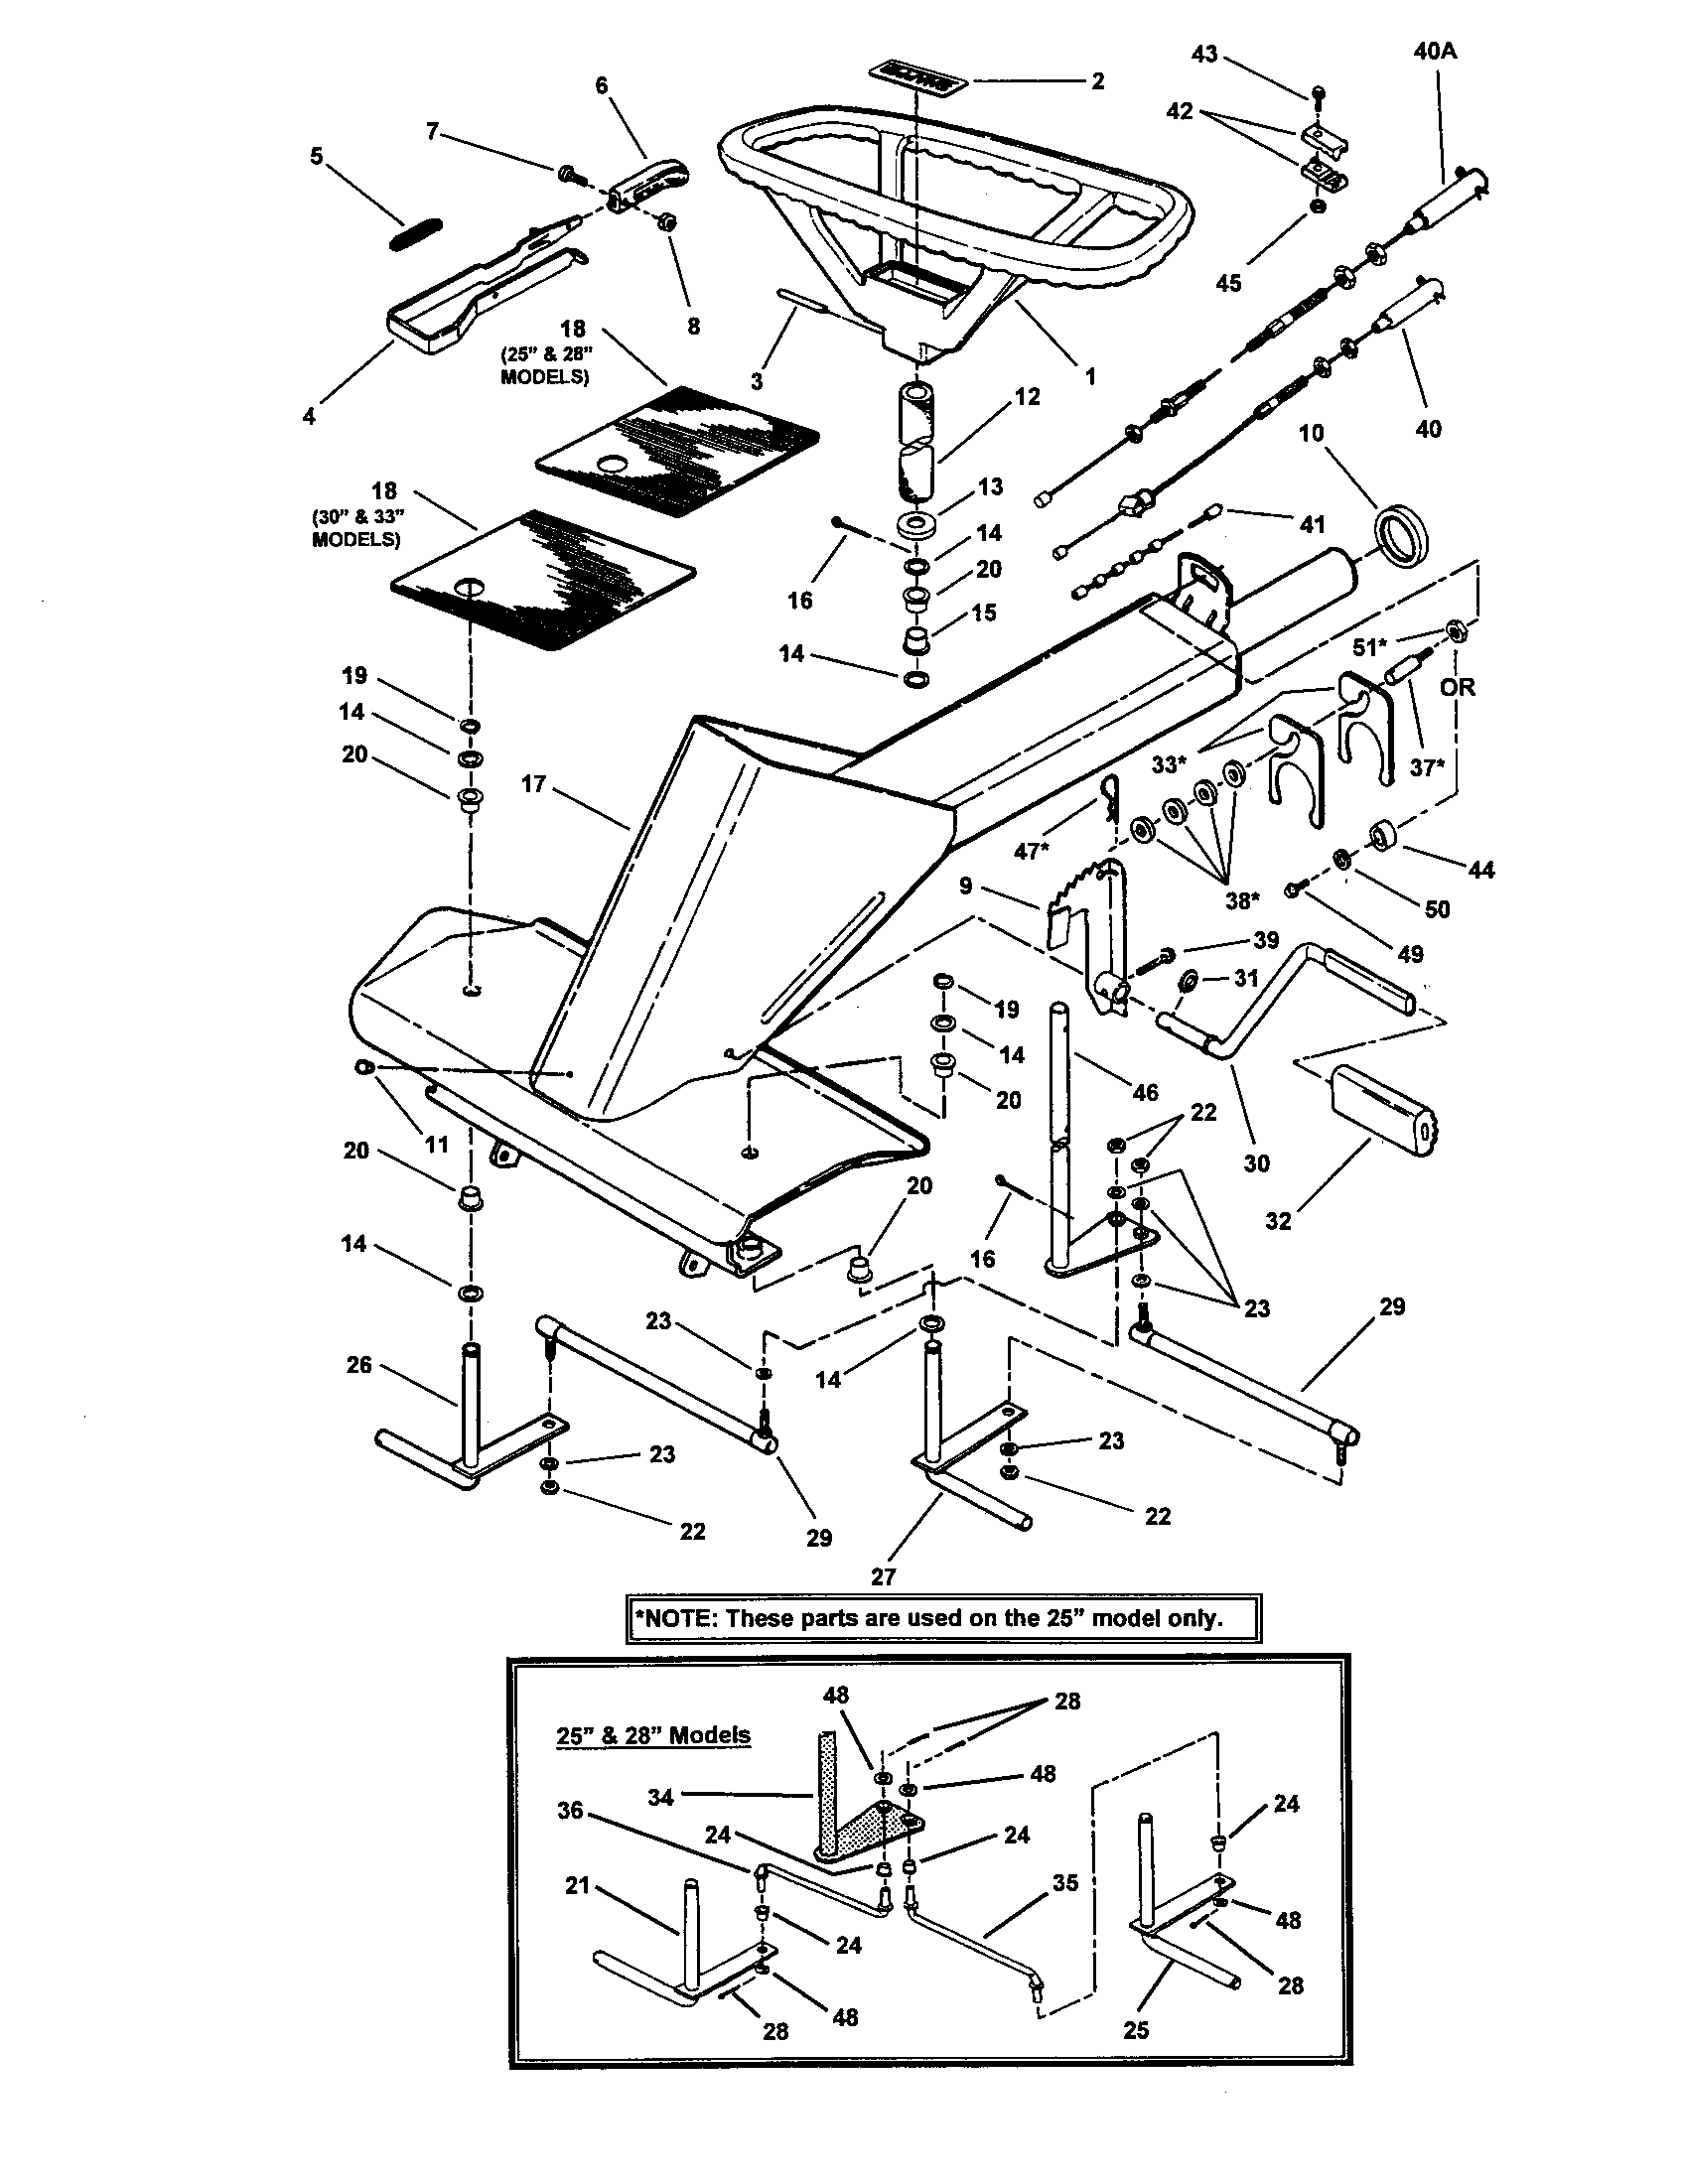 Ignition coil pack wiring diagram for 2000 ford ranger besides deutz f4l912 engine diagram in addition